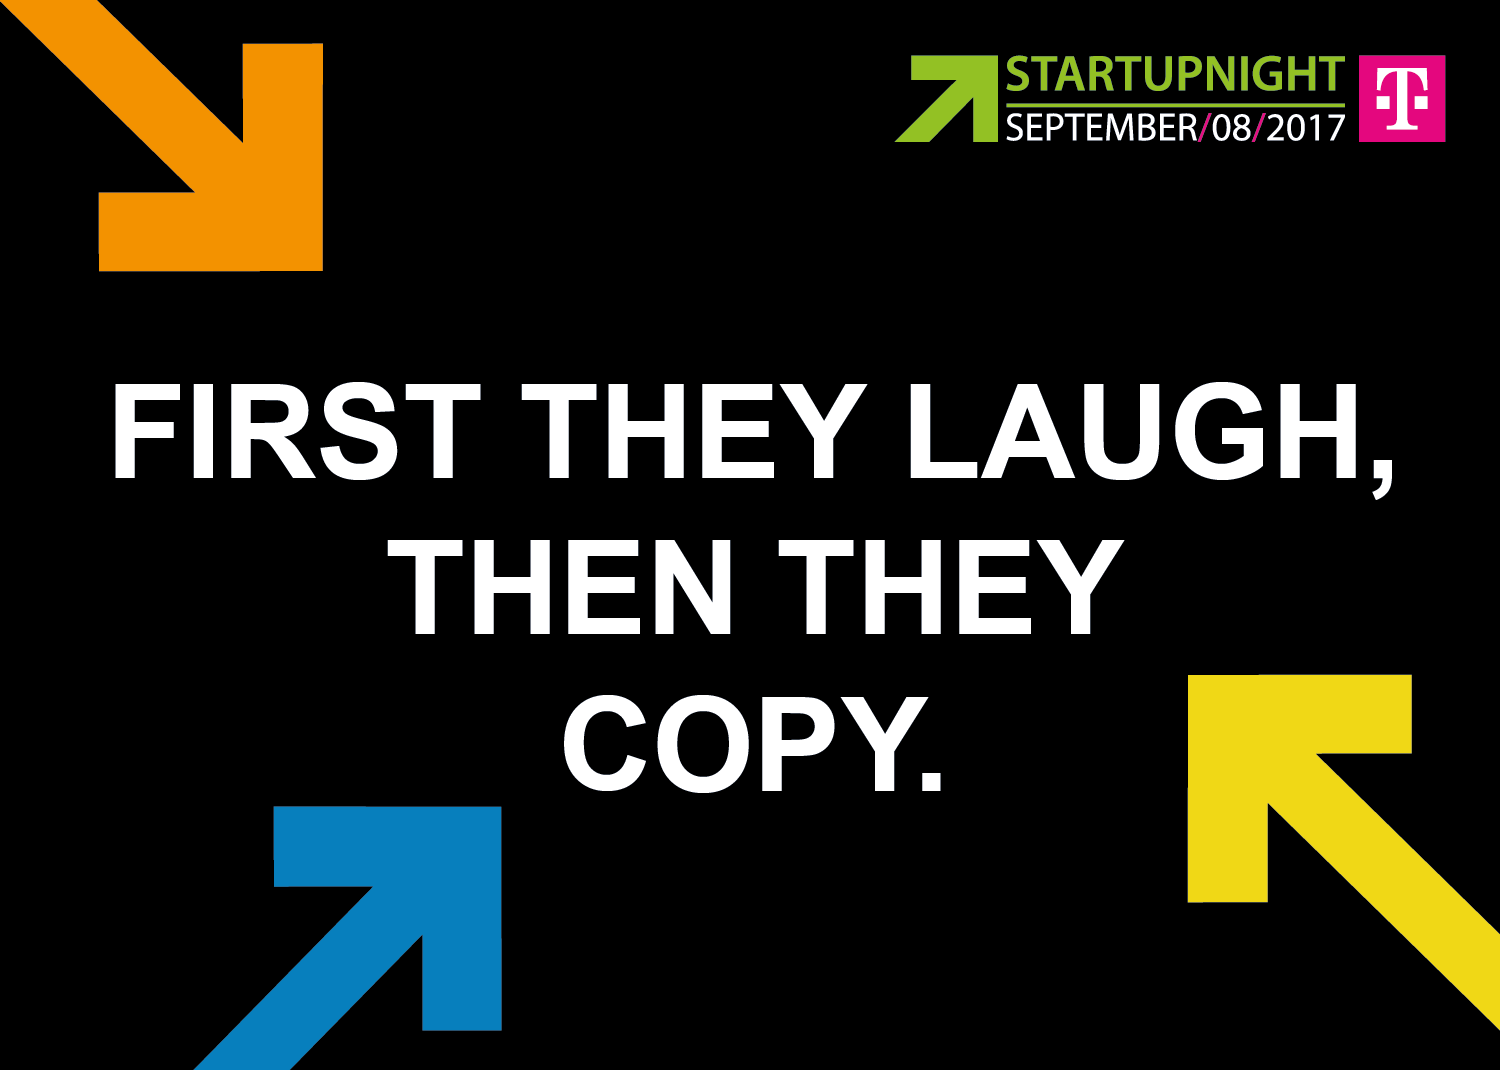 Startupnight Wallcard - First they laugh, then they copy.